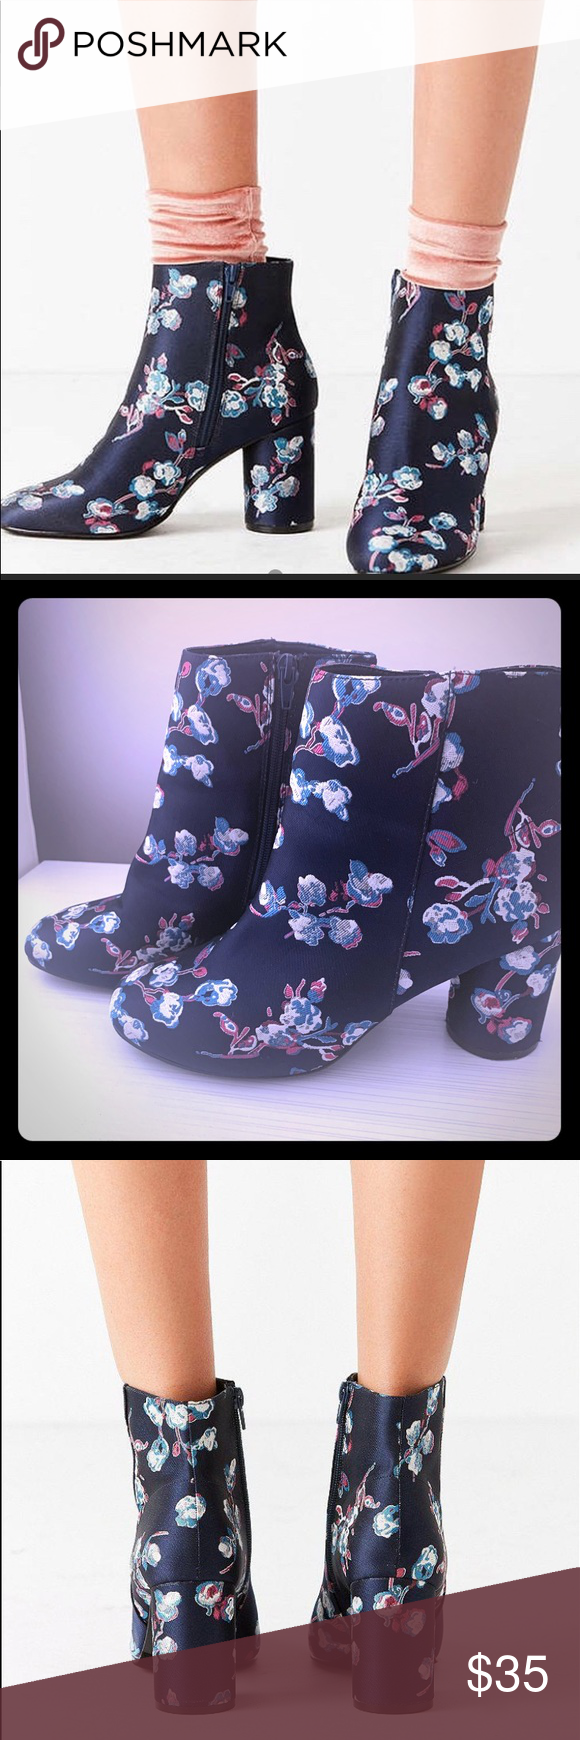 Urban Outfitters Juliet Floral Ankle Boots 10 Urban Outfitters Juliet Floral Jac…